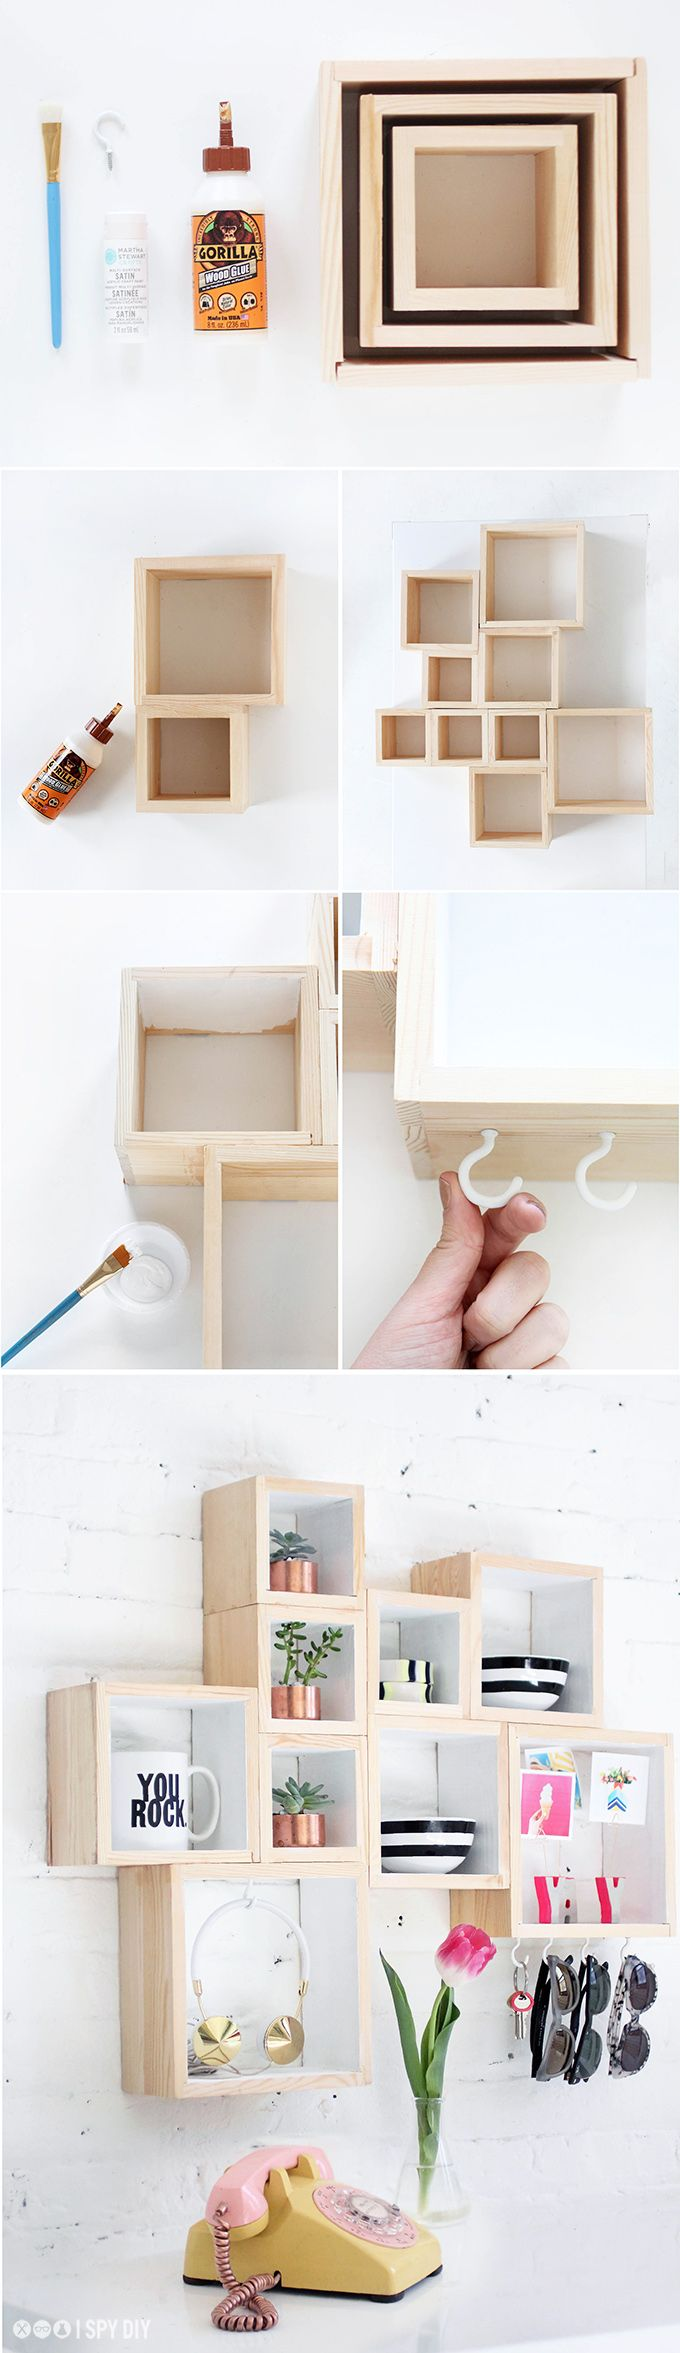 DIY Wall Box Storage Tutorial #DIY #crafts #handmade